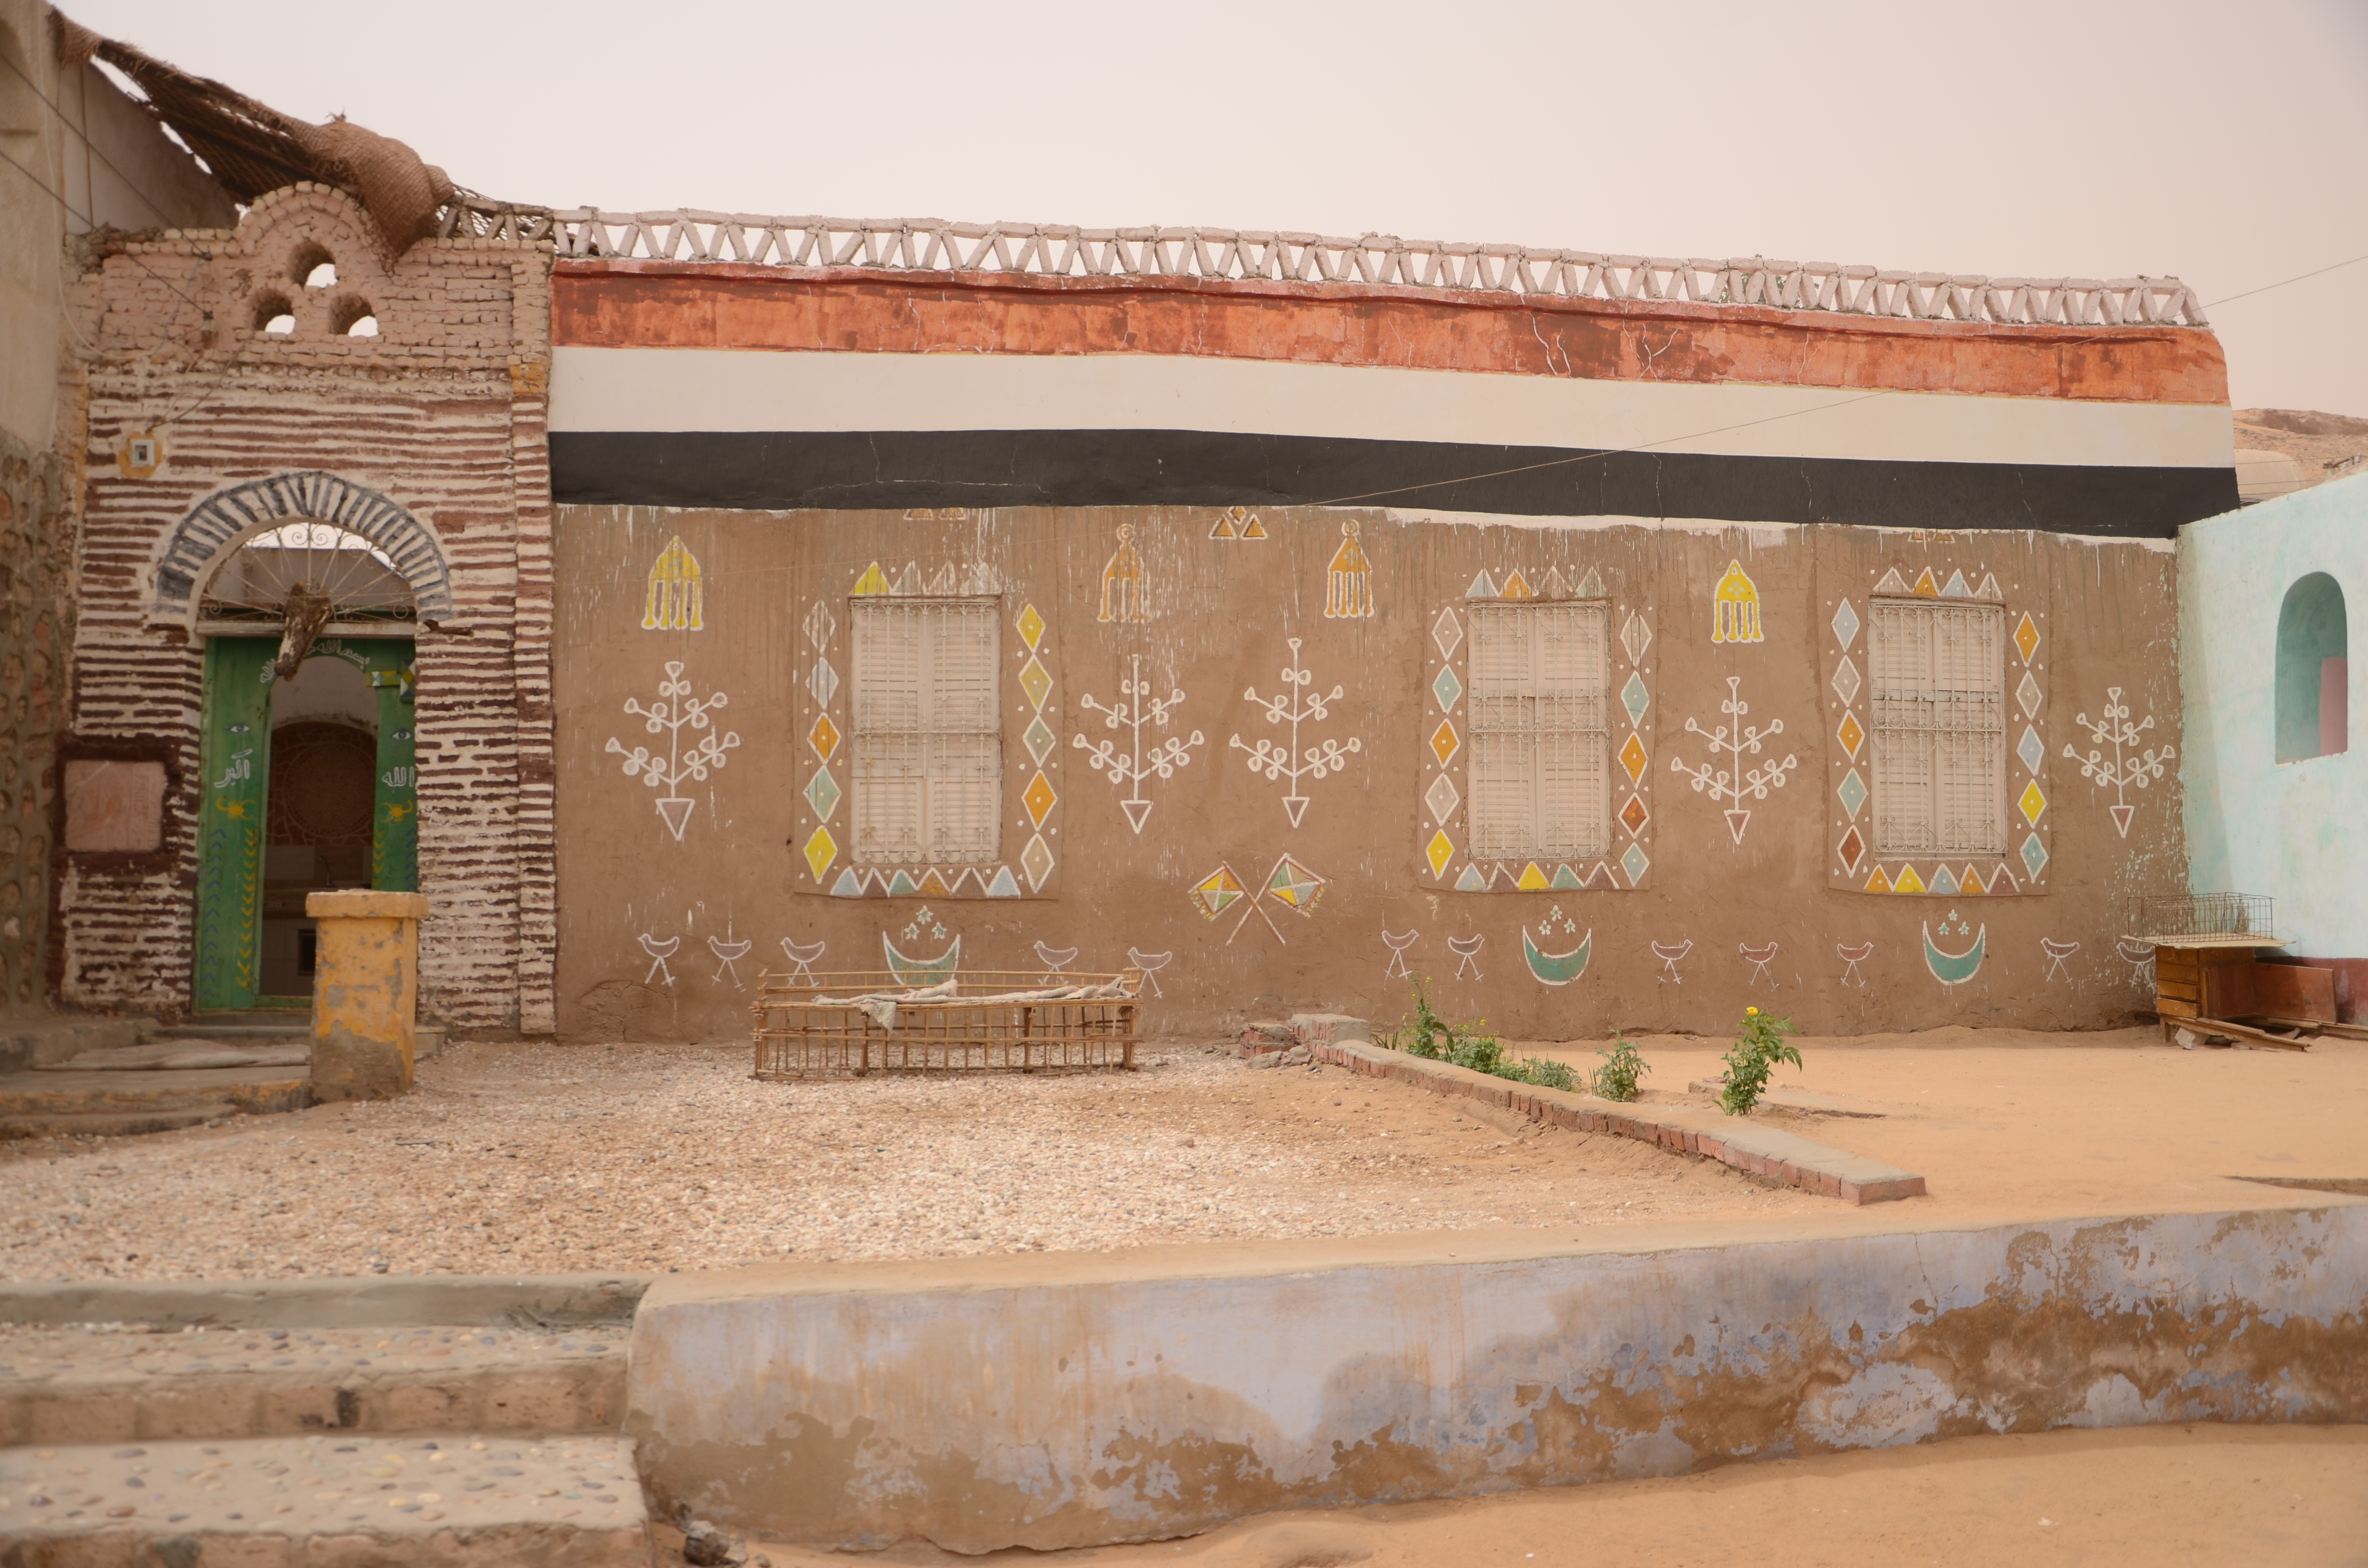 A typical Nubian house with the magnificent motifs drown on it.